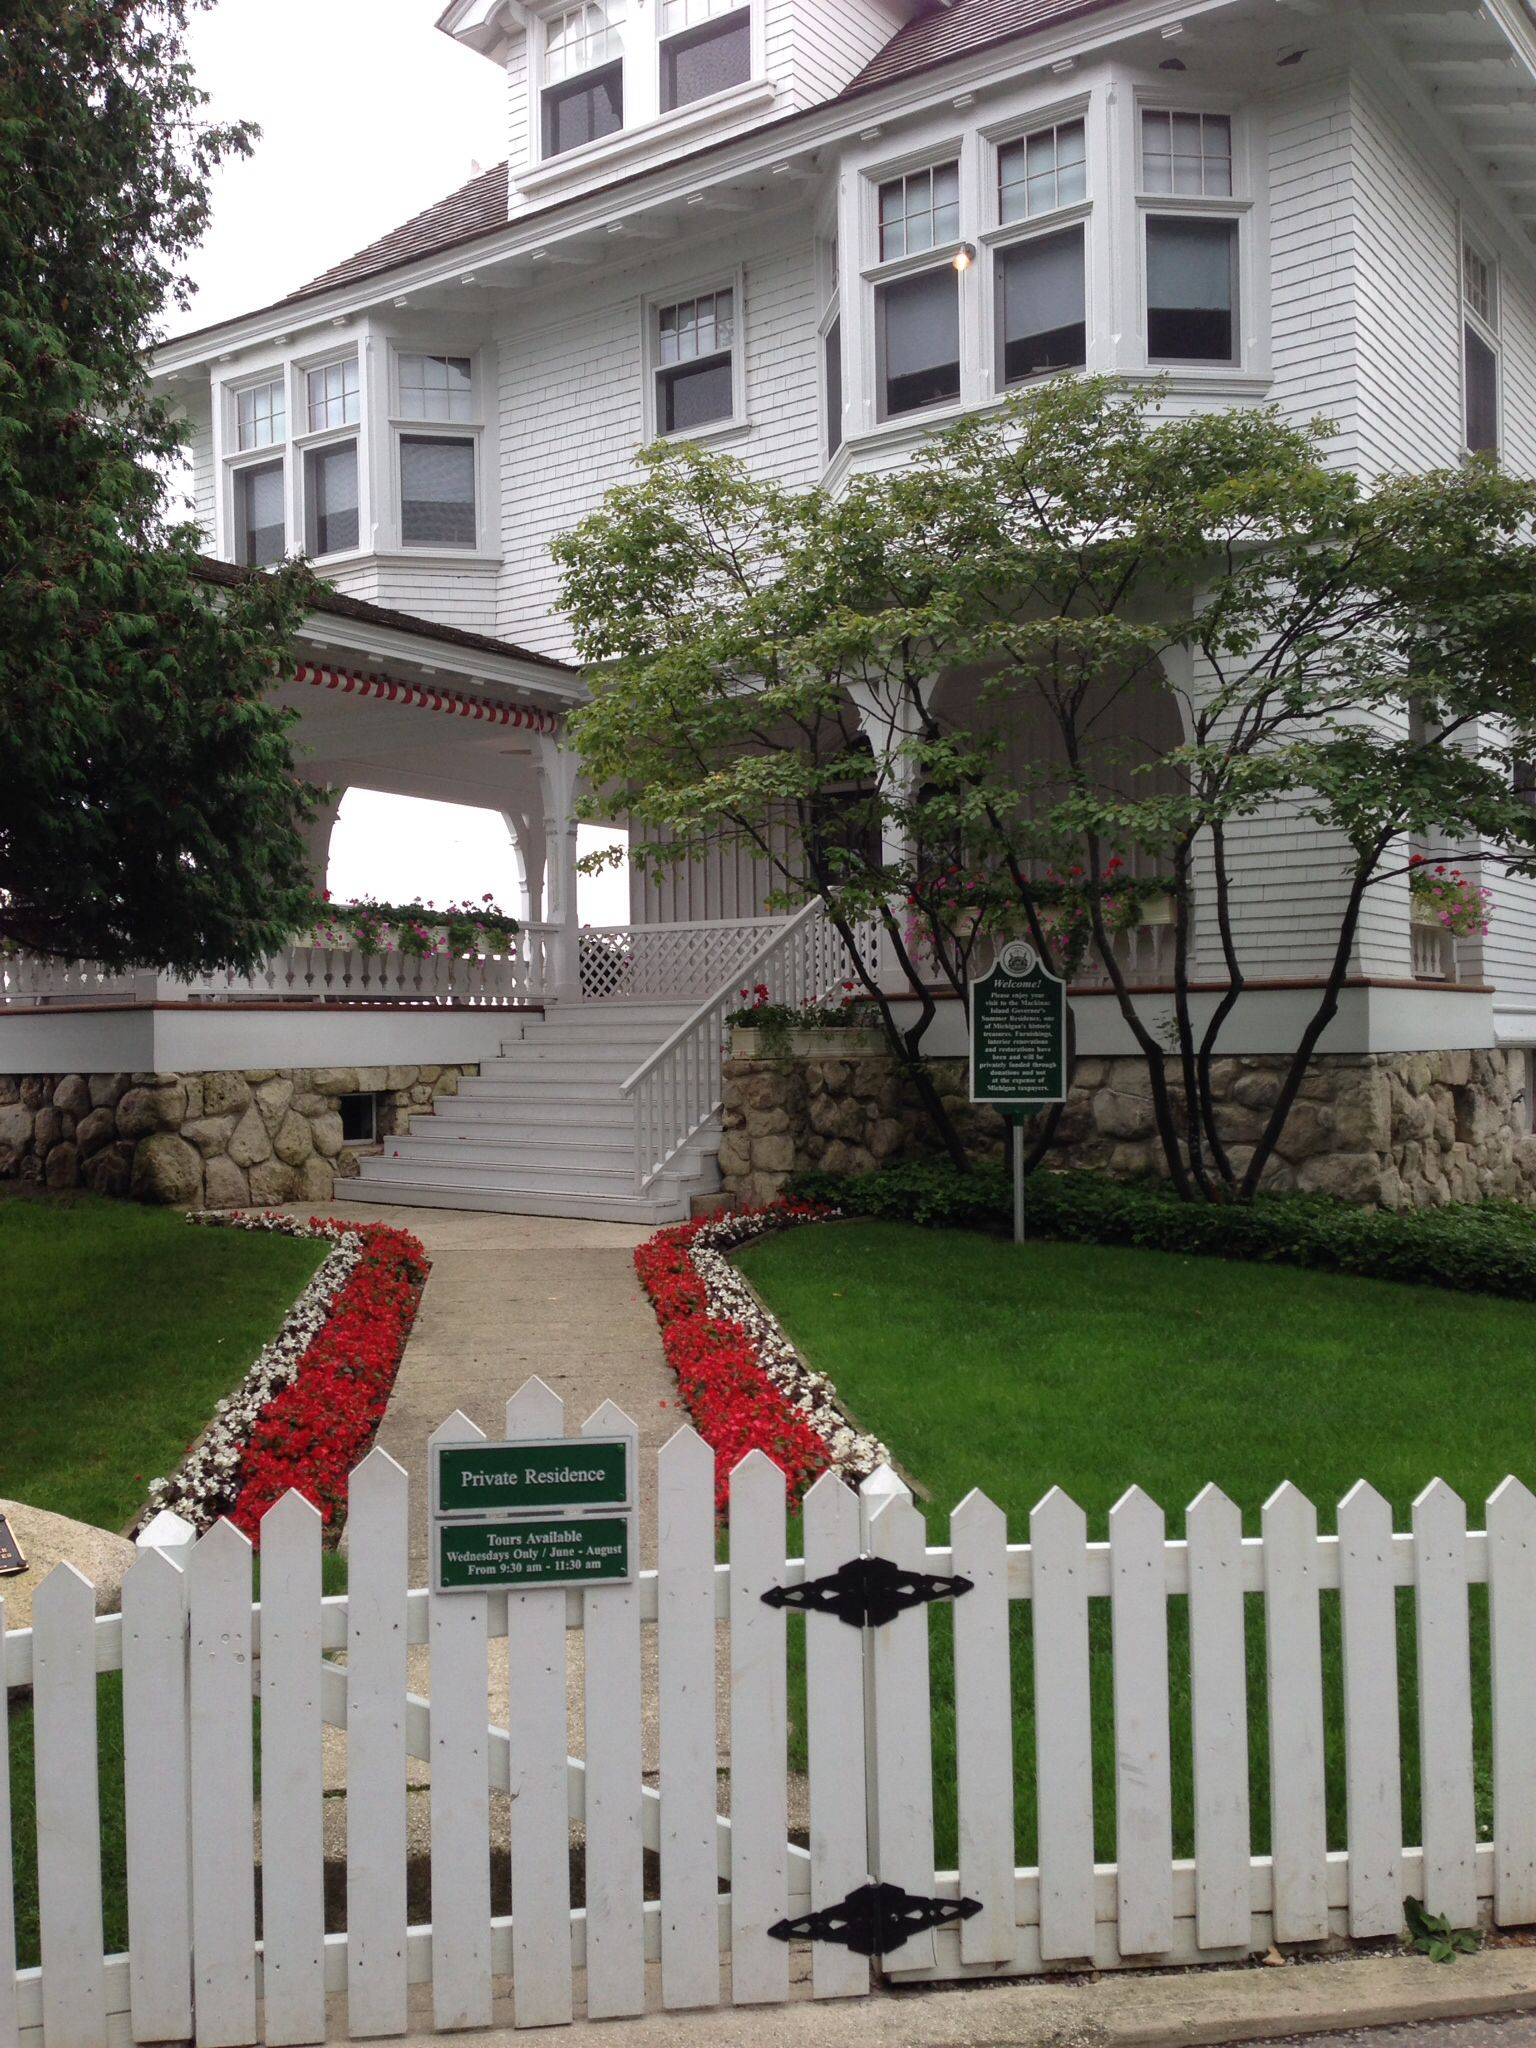 The Governors Summer Home On Mackinaw Island Mackinac Island Mackinac Island Michigan Mackinac